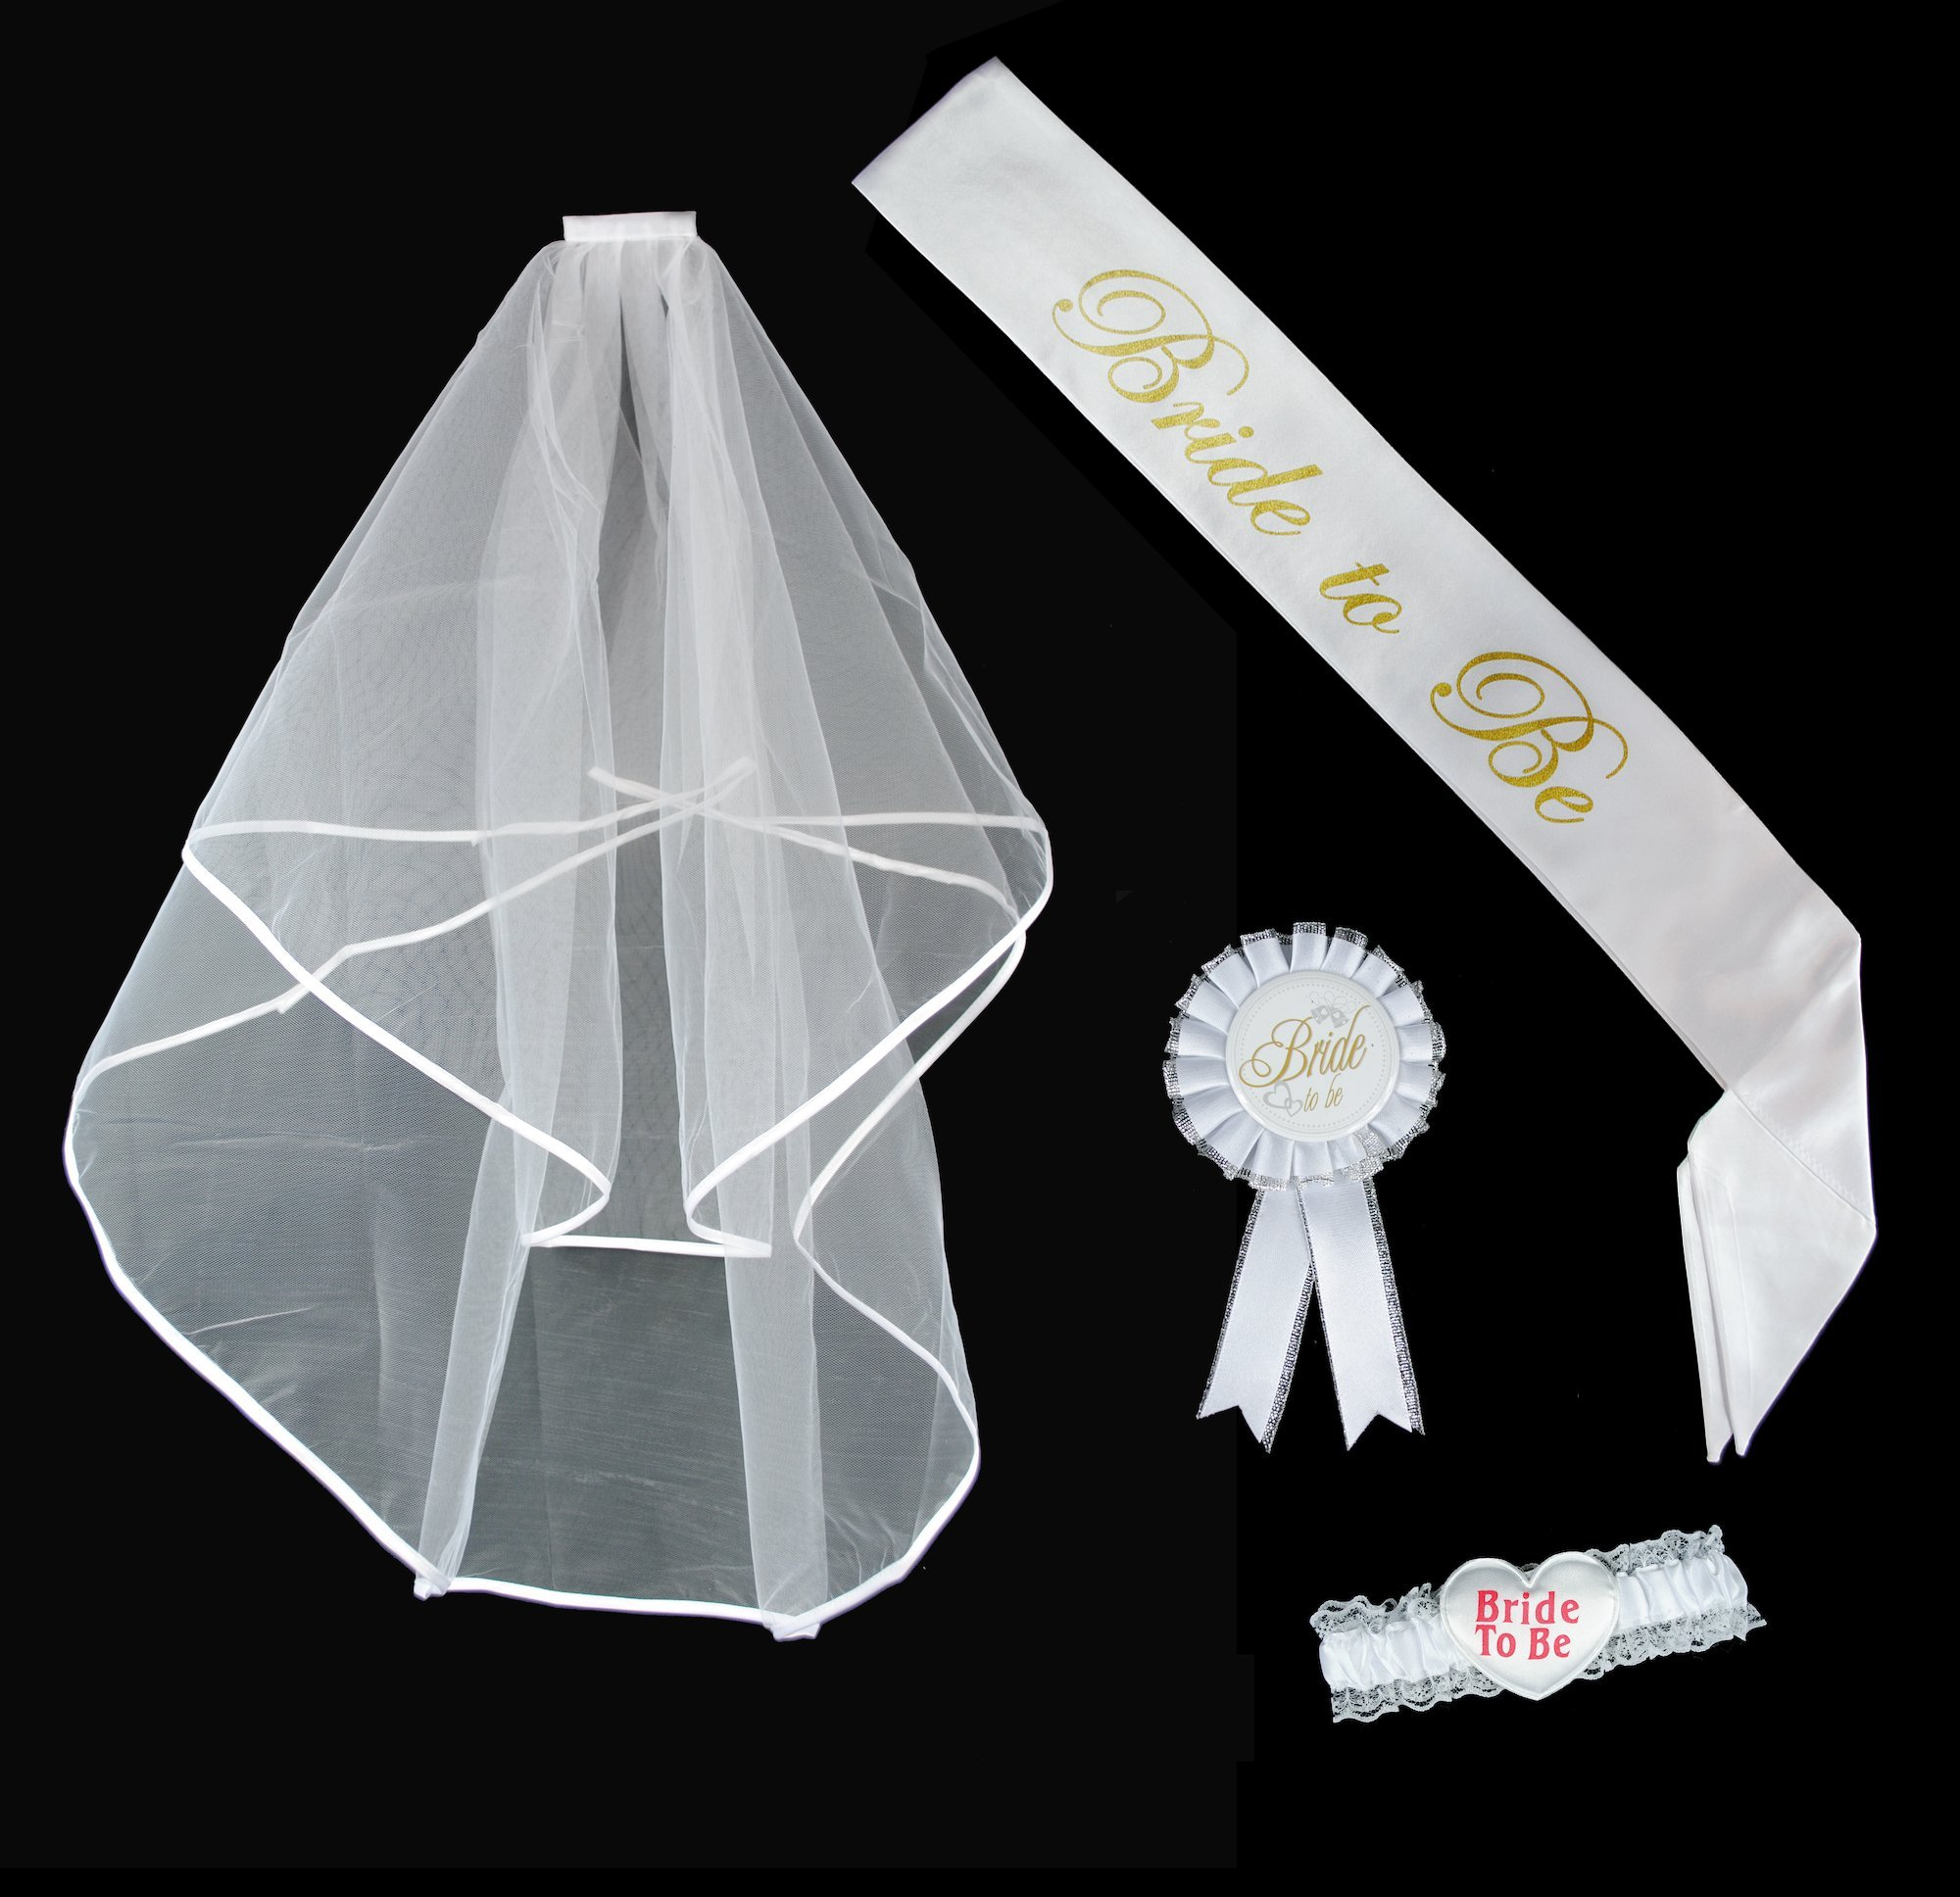 Jazzoo Bachelorette Party Accessory Kit Including Bride To Be Sash and Veil, Rosette Badge & Bride To Be Garter